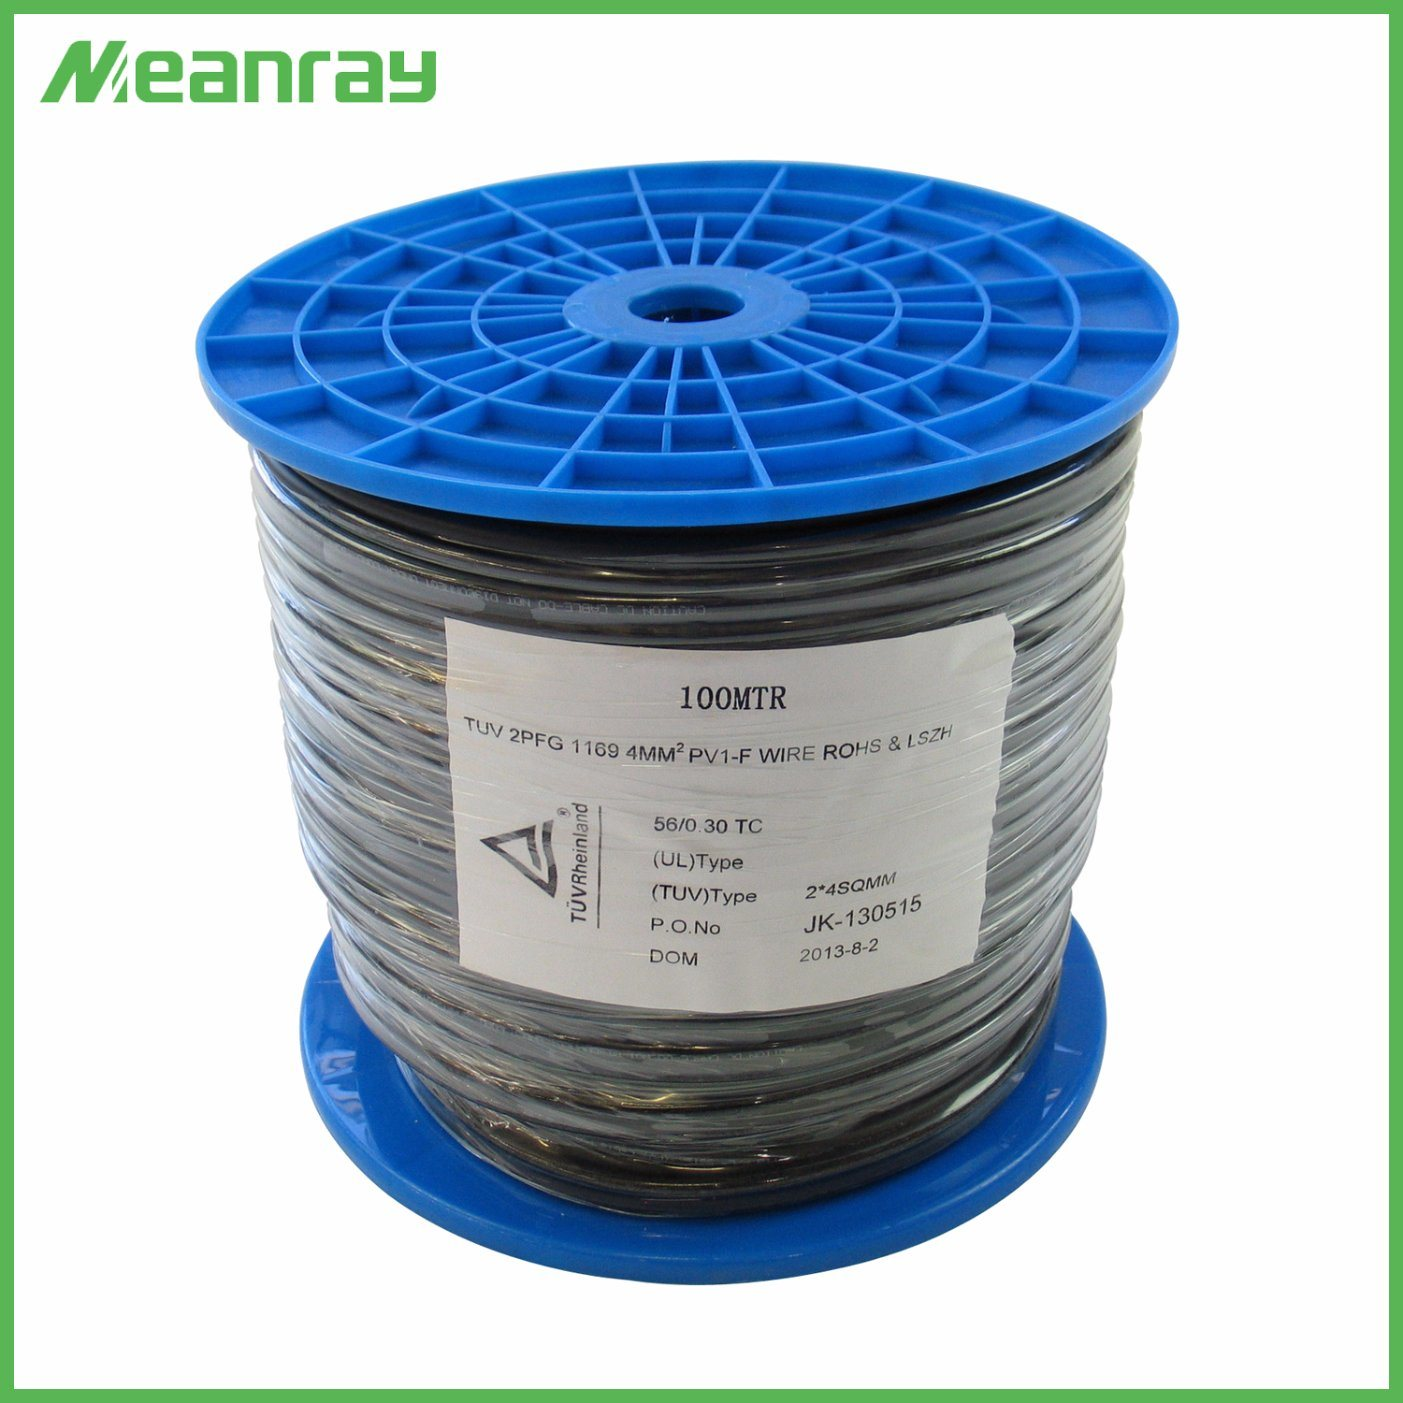 China Flexible Copper Rubber Sheathed 4mm DC Cable UL Listed 8/10/12 ...